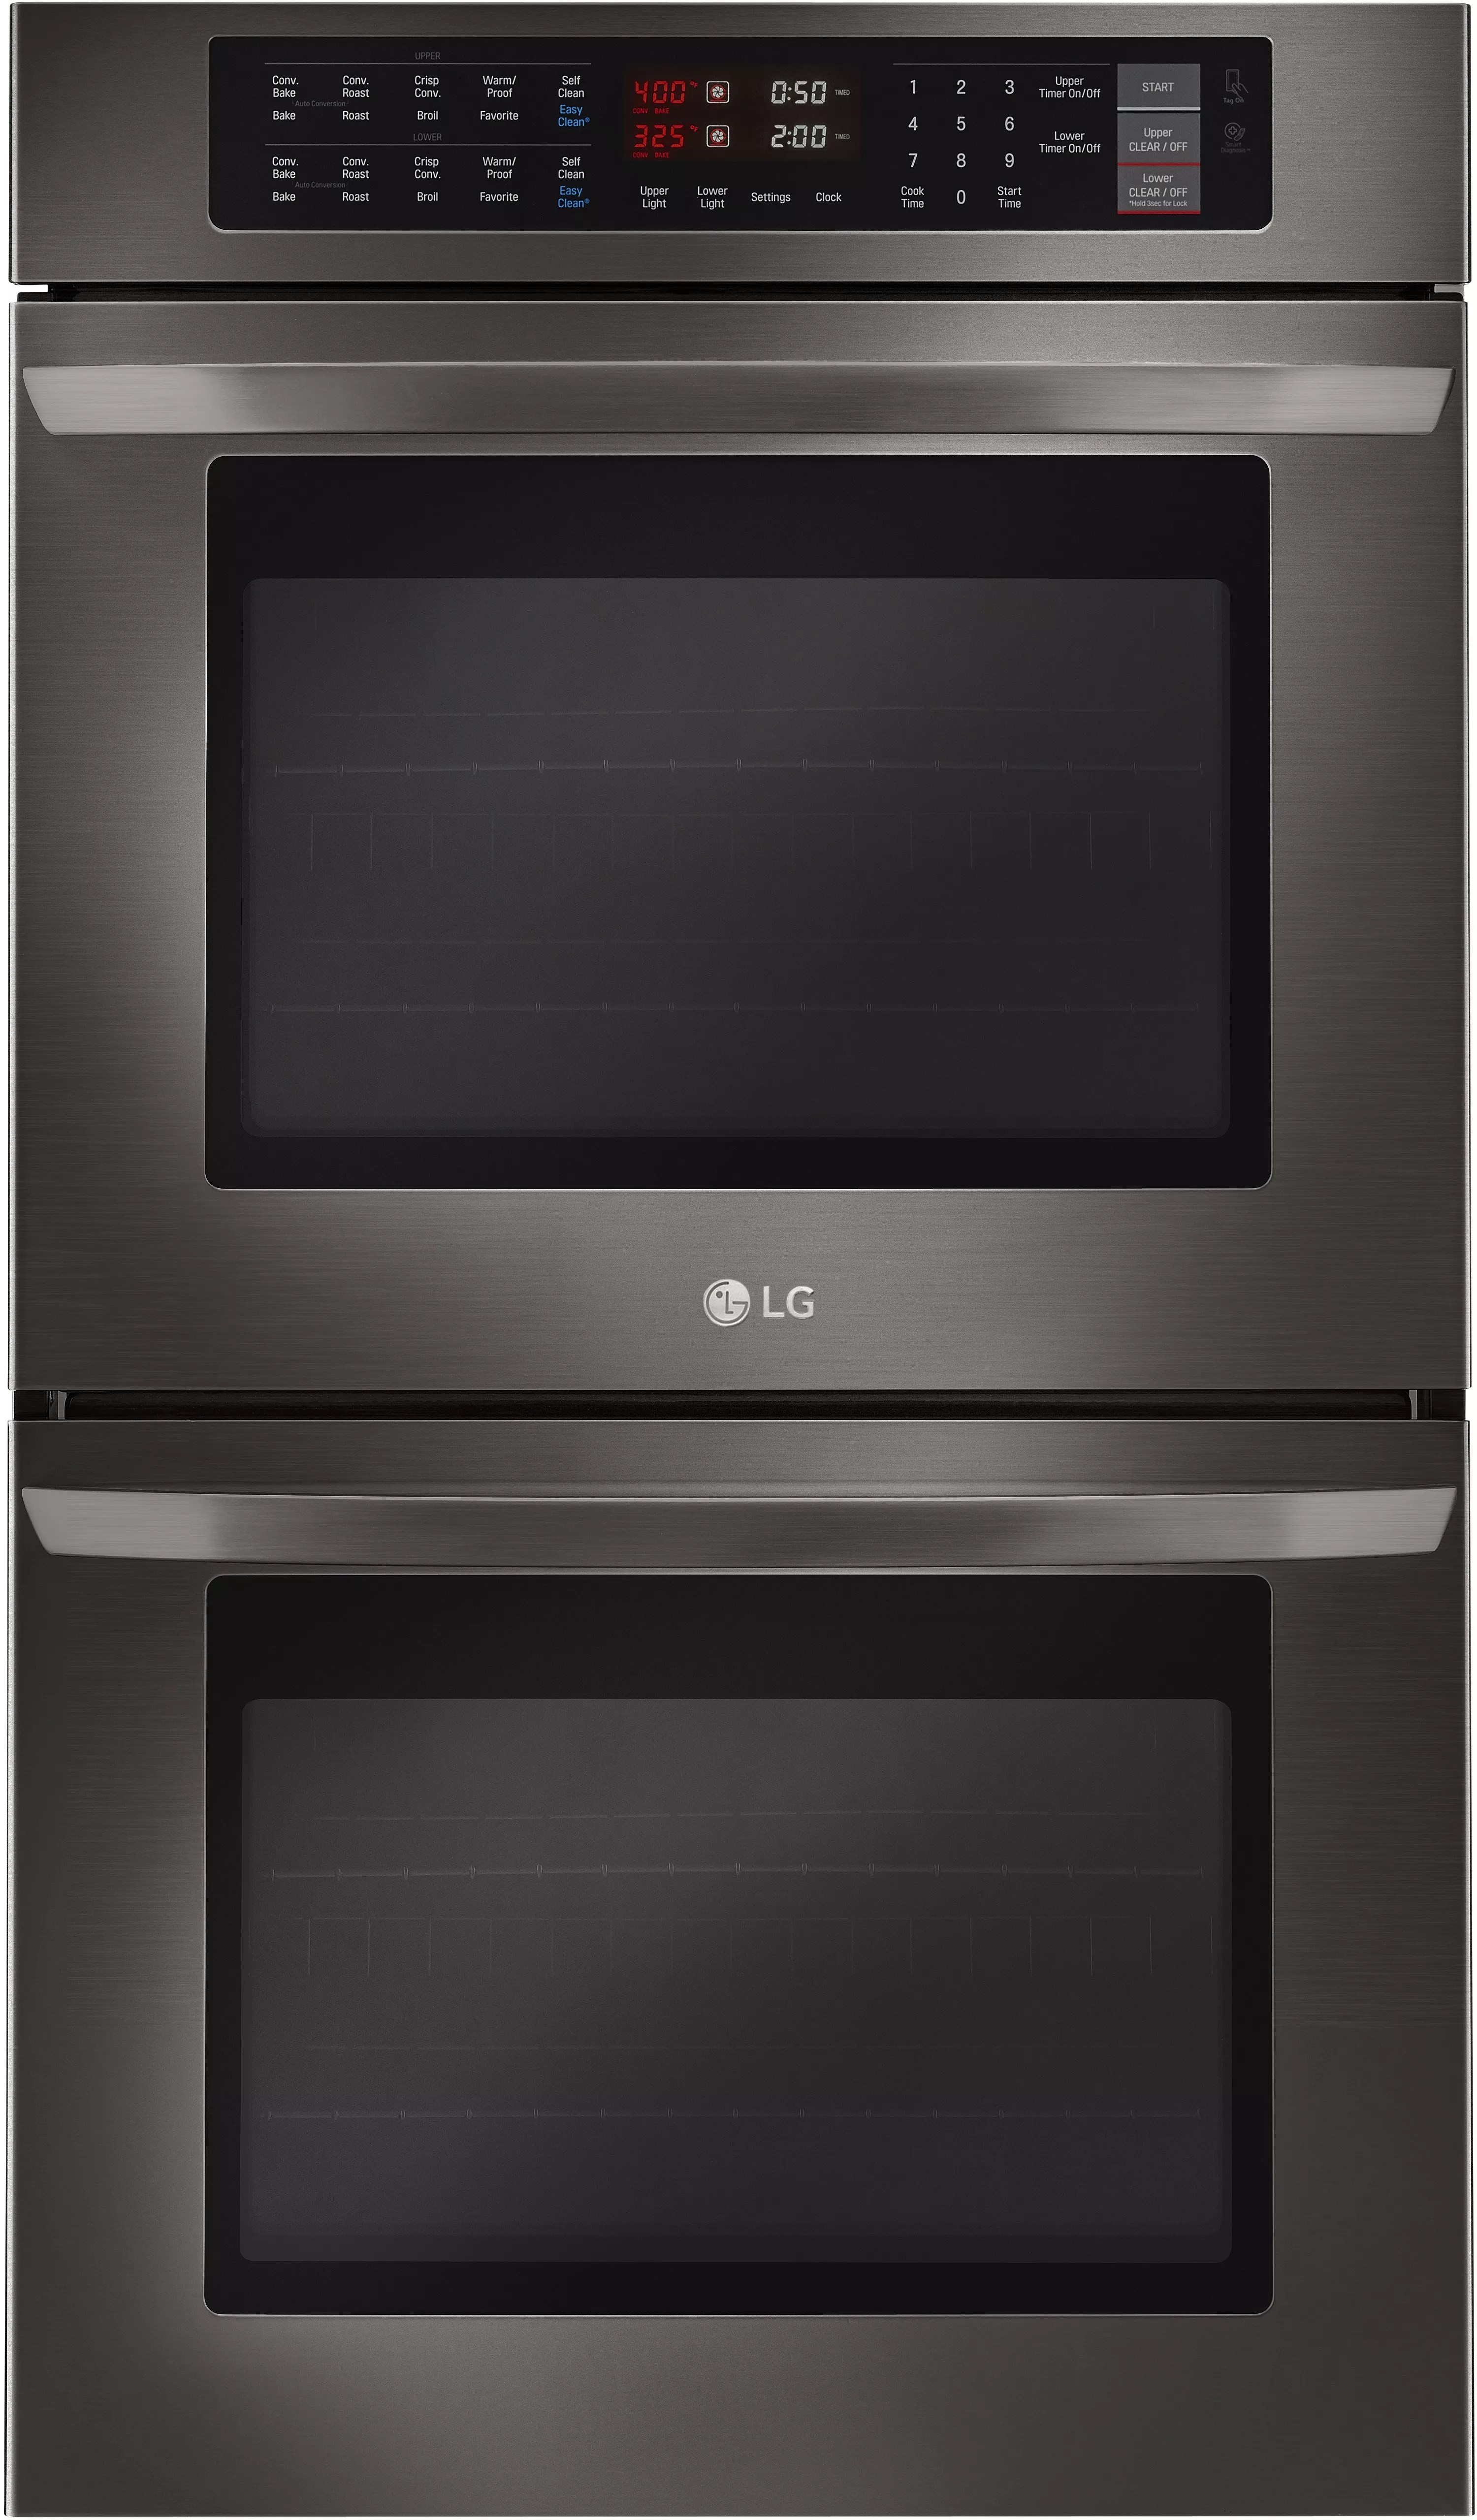 LG LWD3063BD 30 Inch Double Electric Wall Oven with